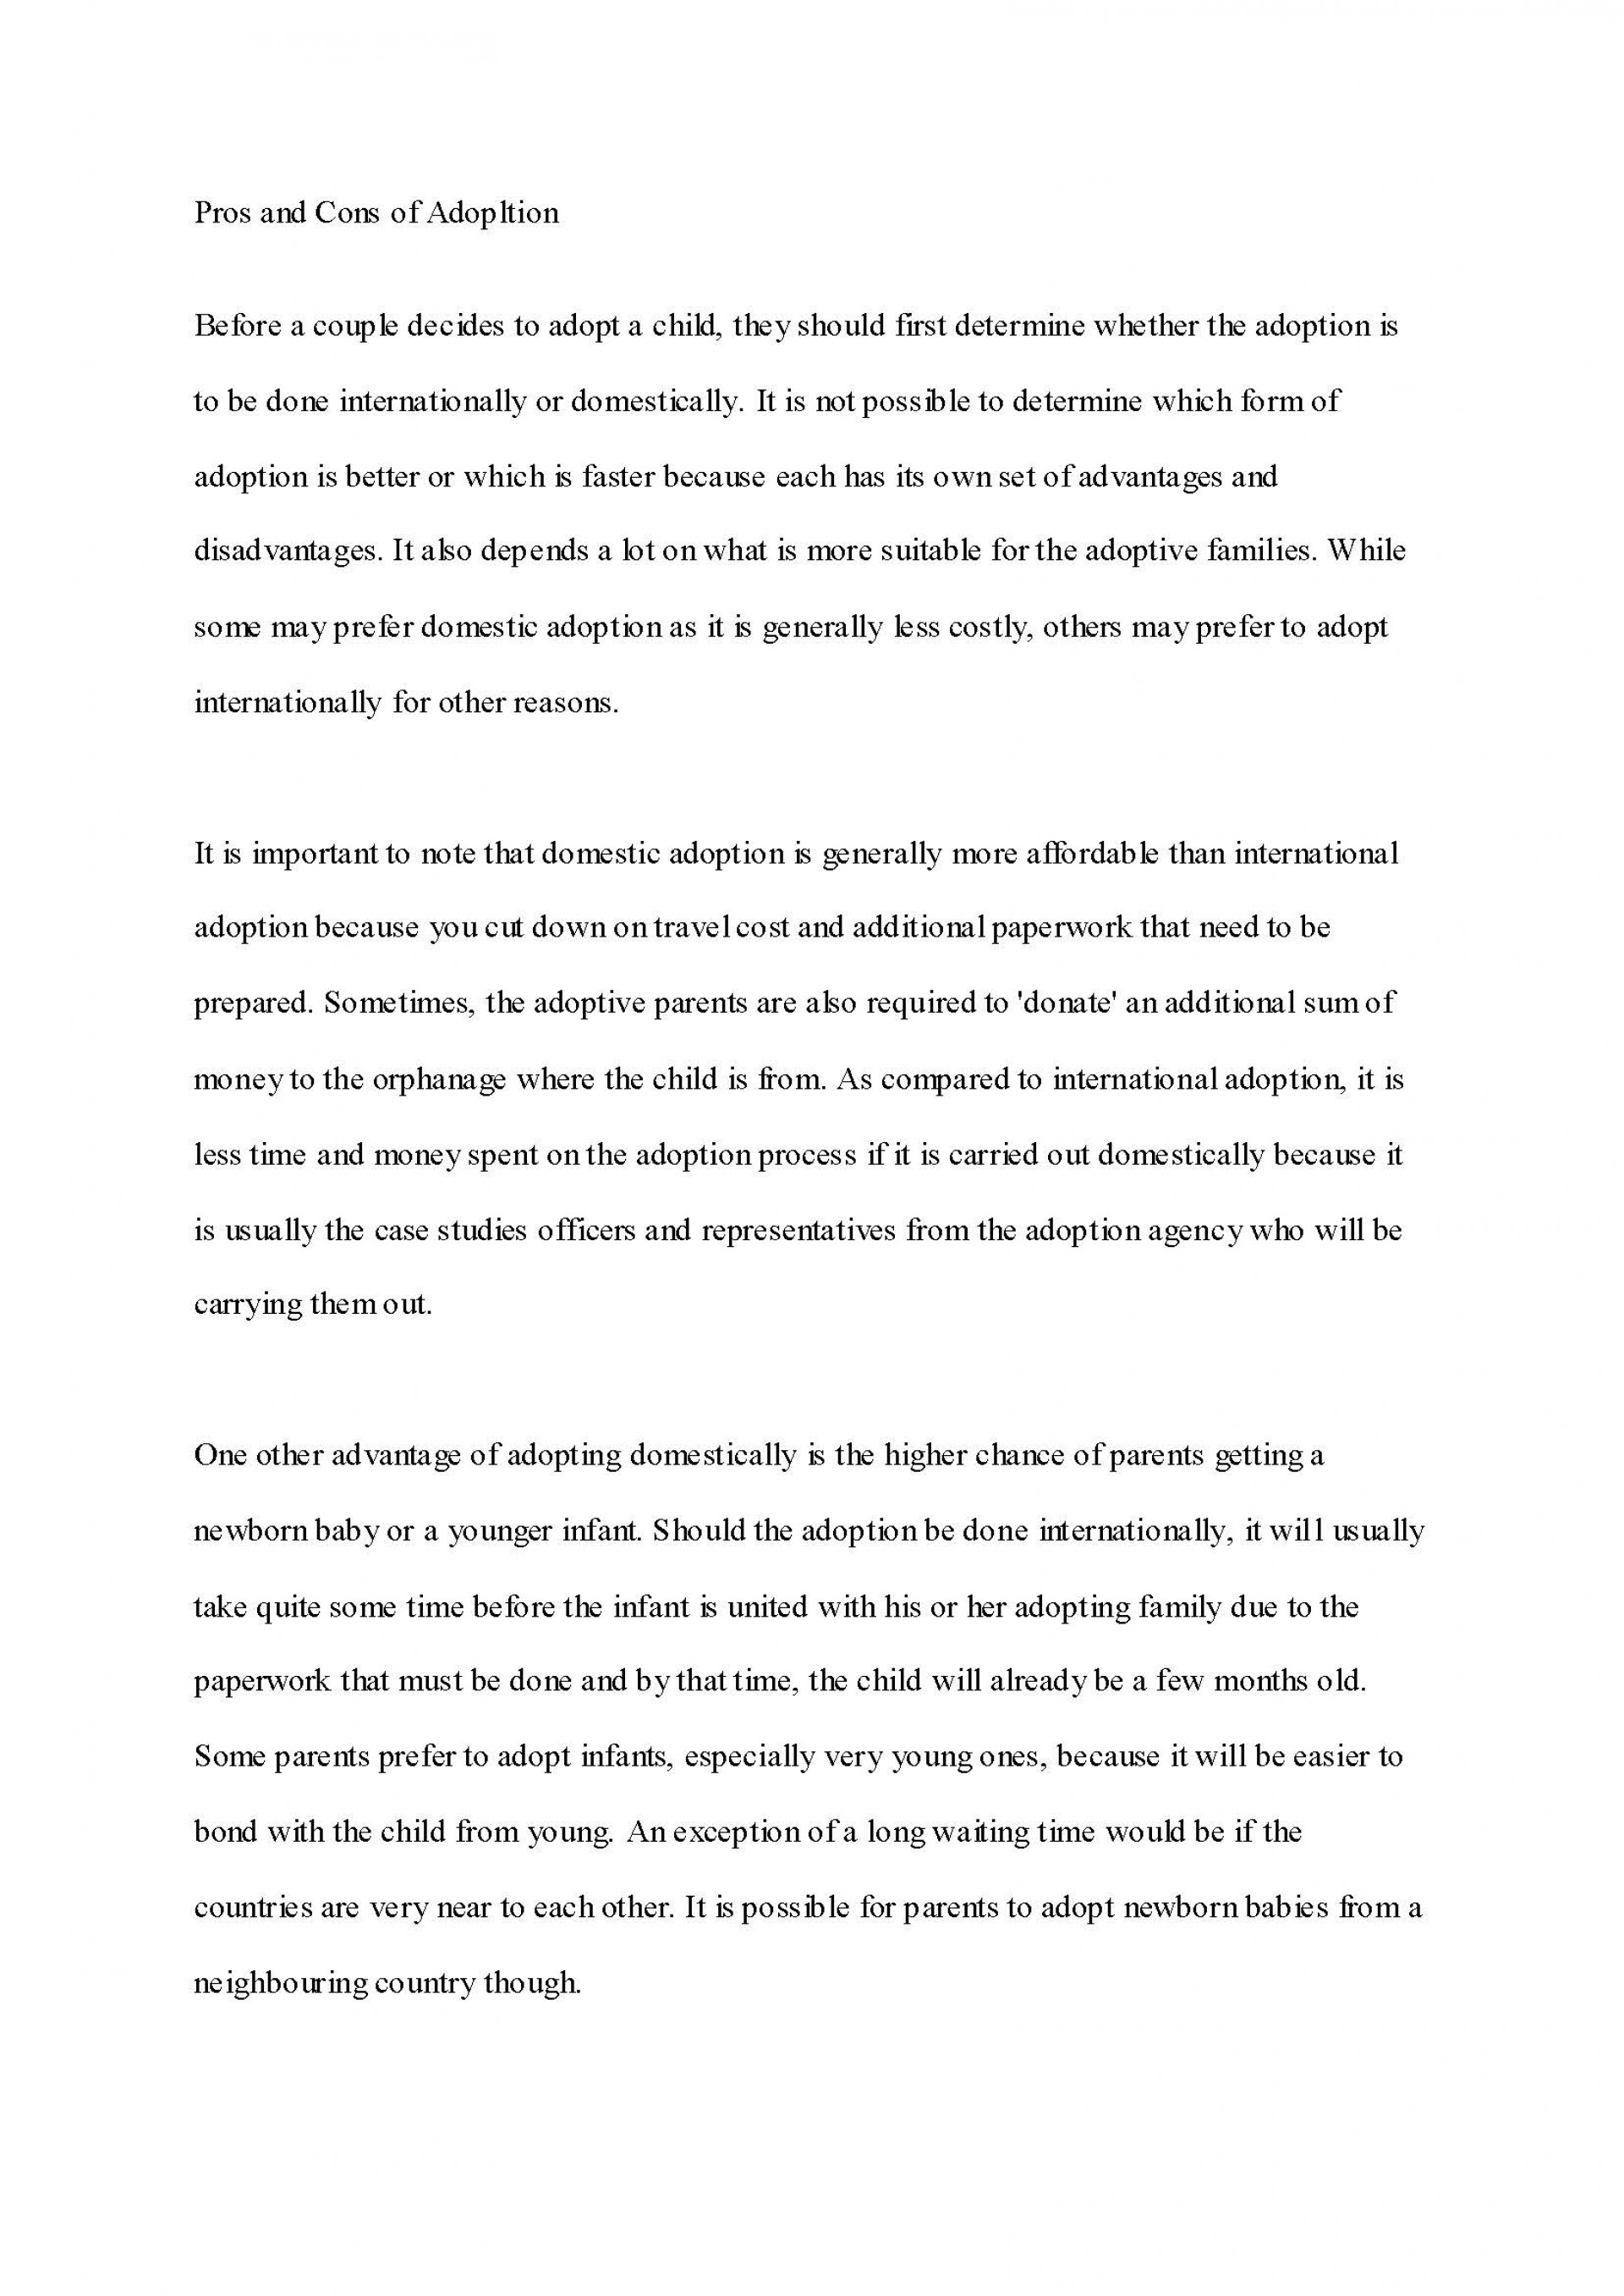 013 Process Essay Topics Adoption Sample Marvelous Examples High School For College 1920